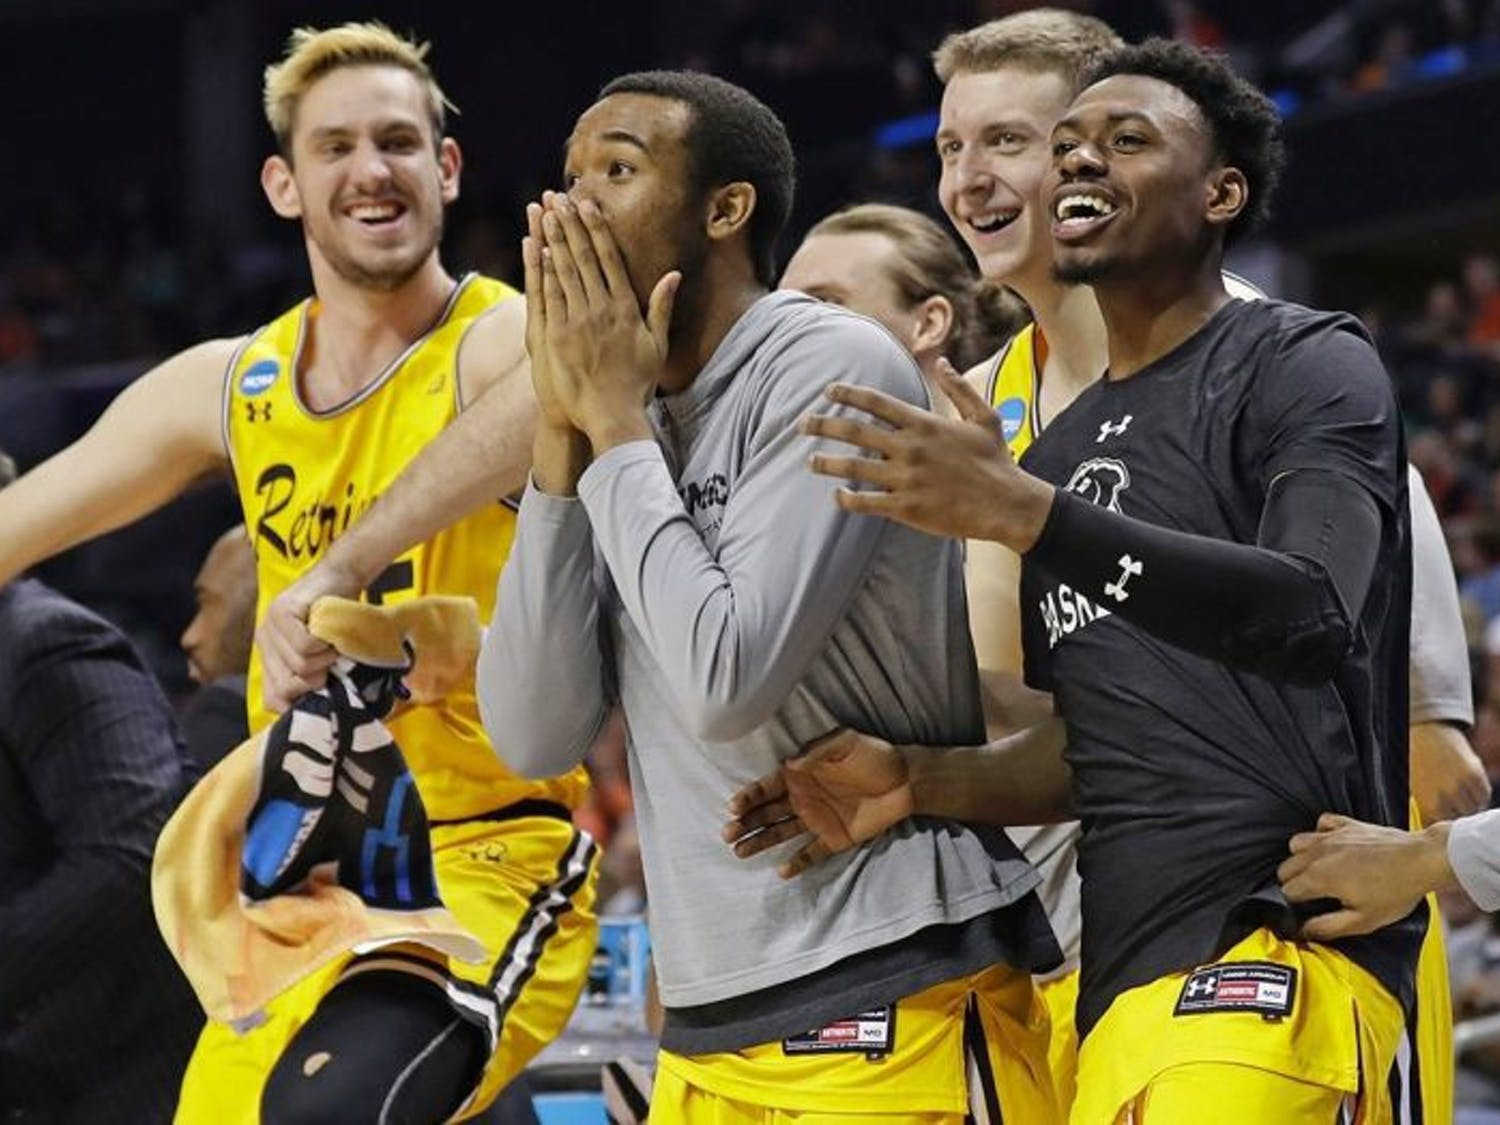 UMBC pulled off the biggest upset in NCAA Tournament history when it beat No. 1 Virginia in the opening round.